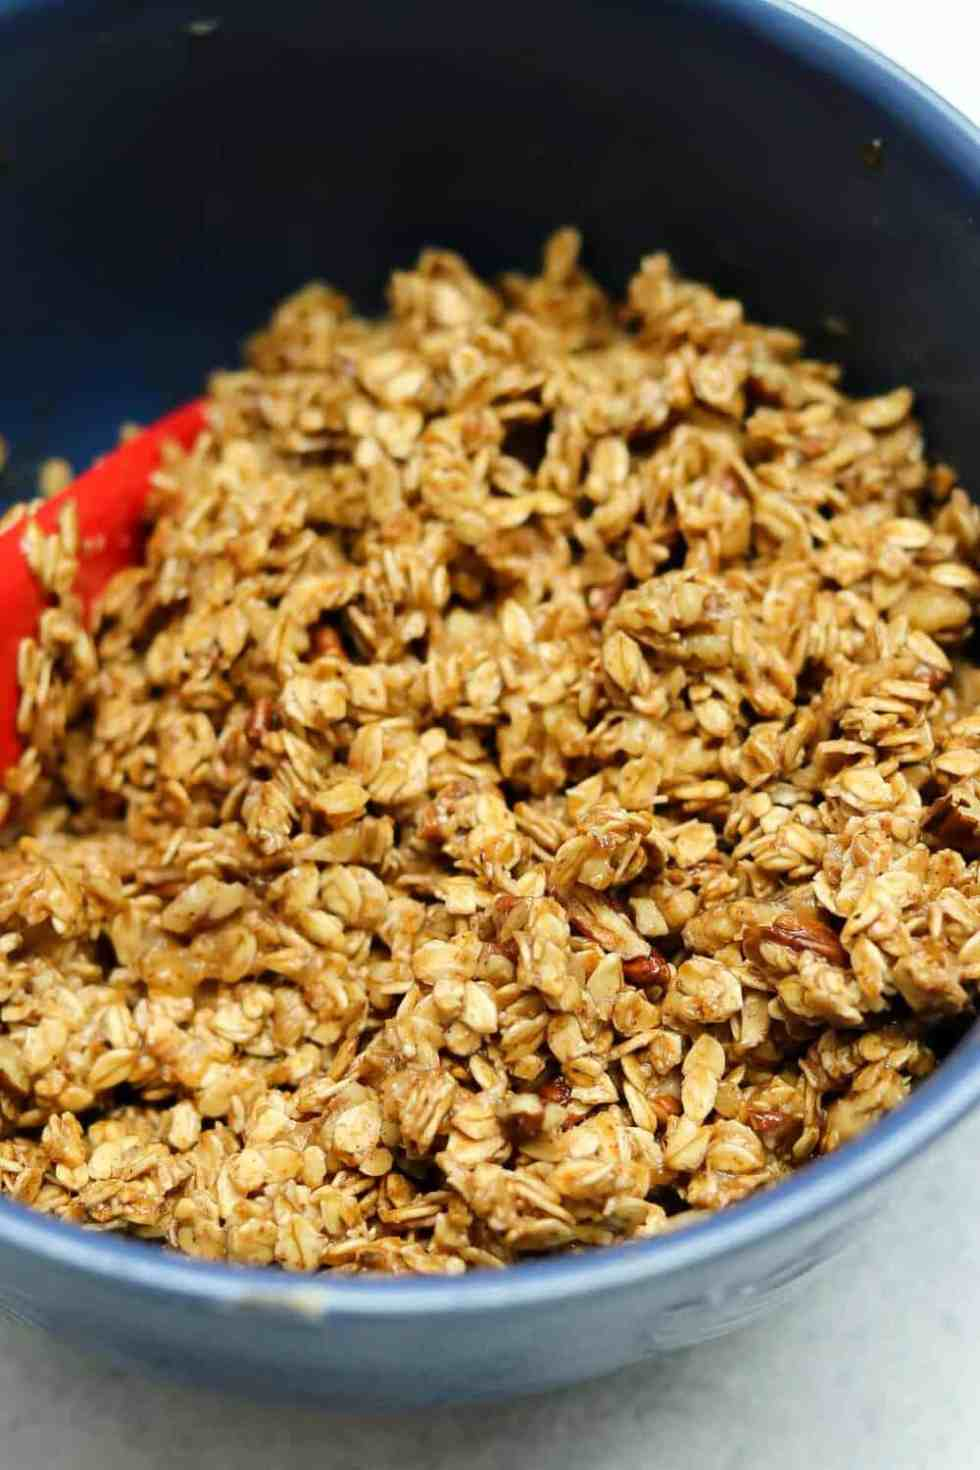 Up close shot of the granola mixture in a large blue bowl.